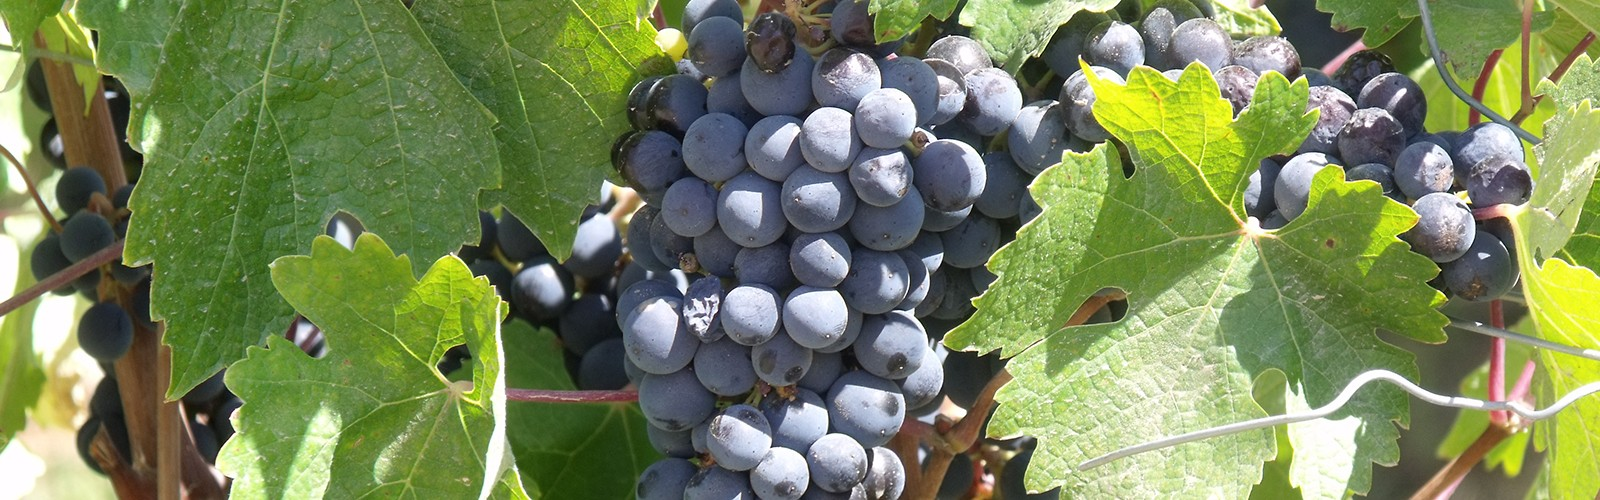 Cluster-of-grapes-at-Santa-Cruz12